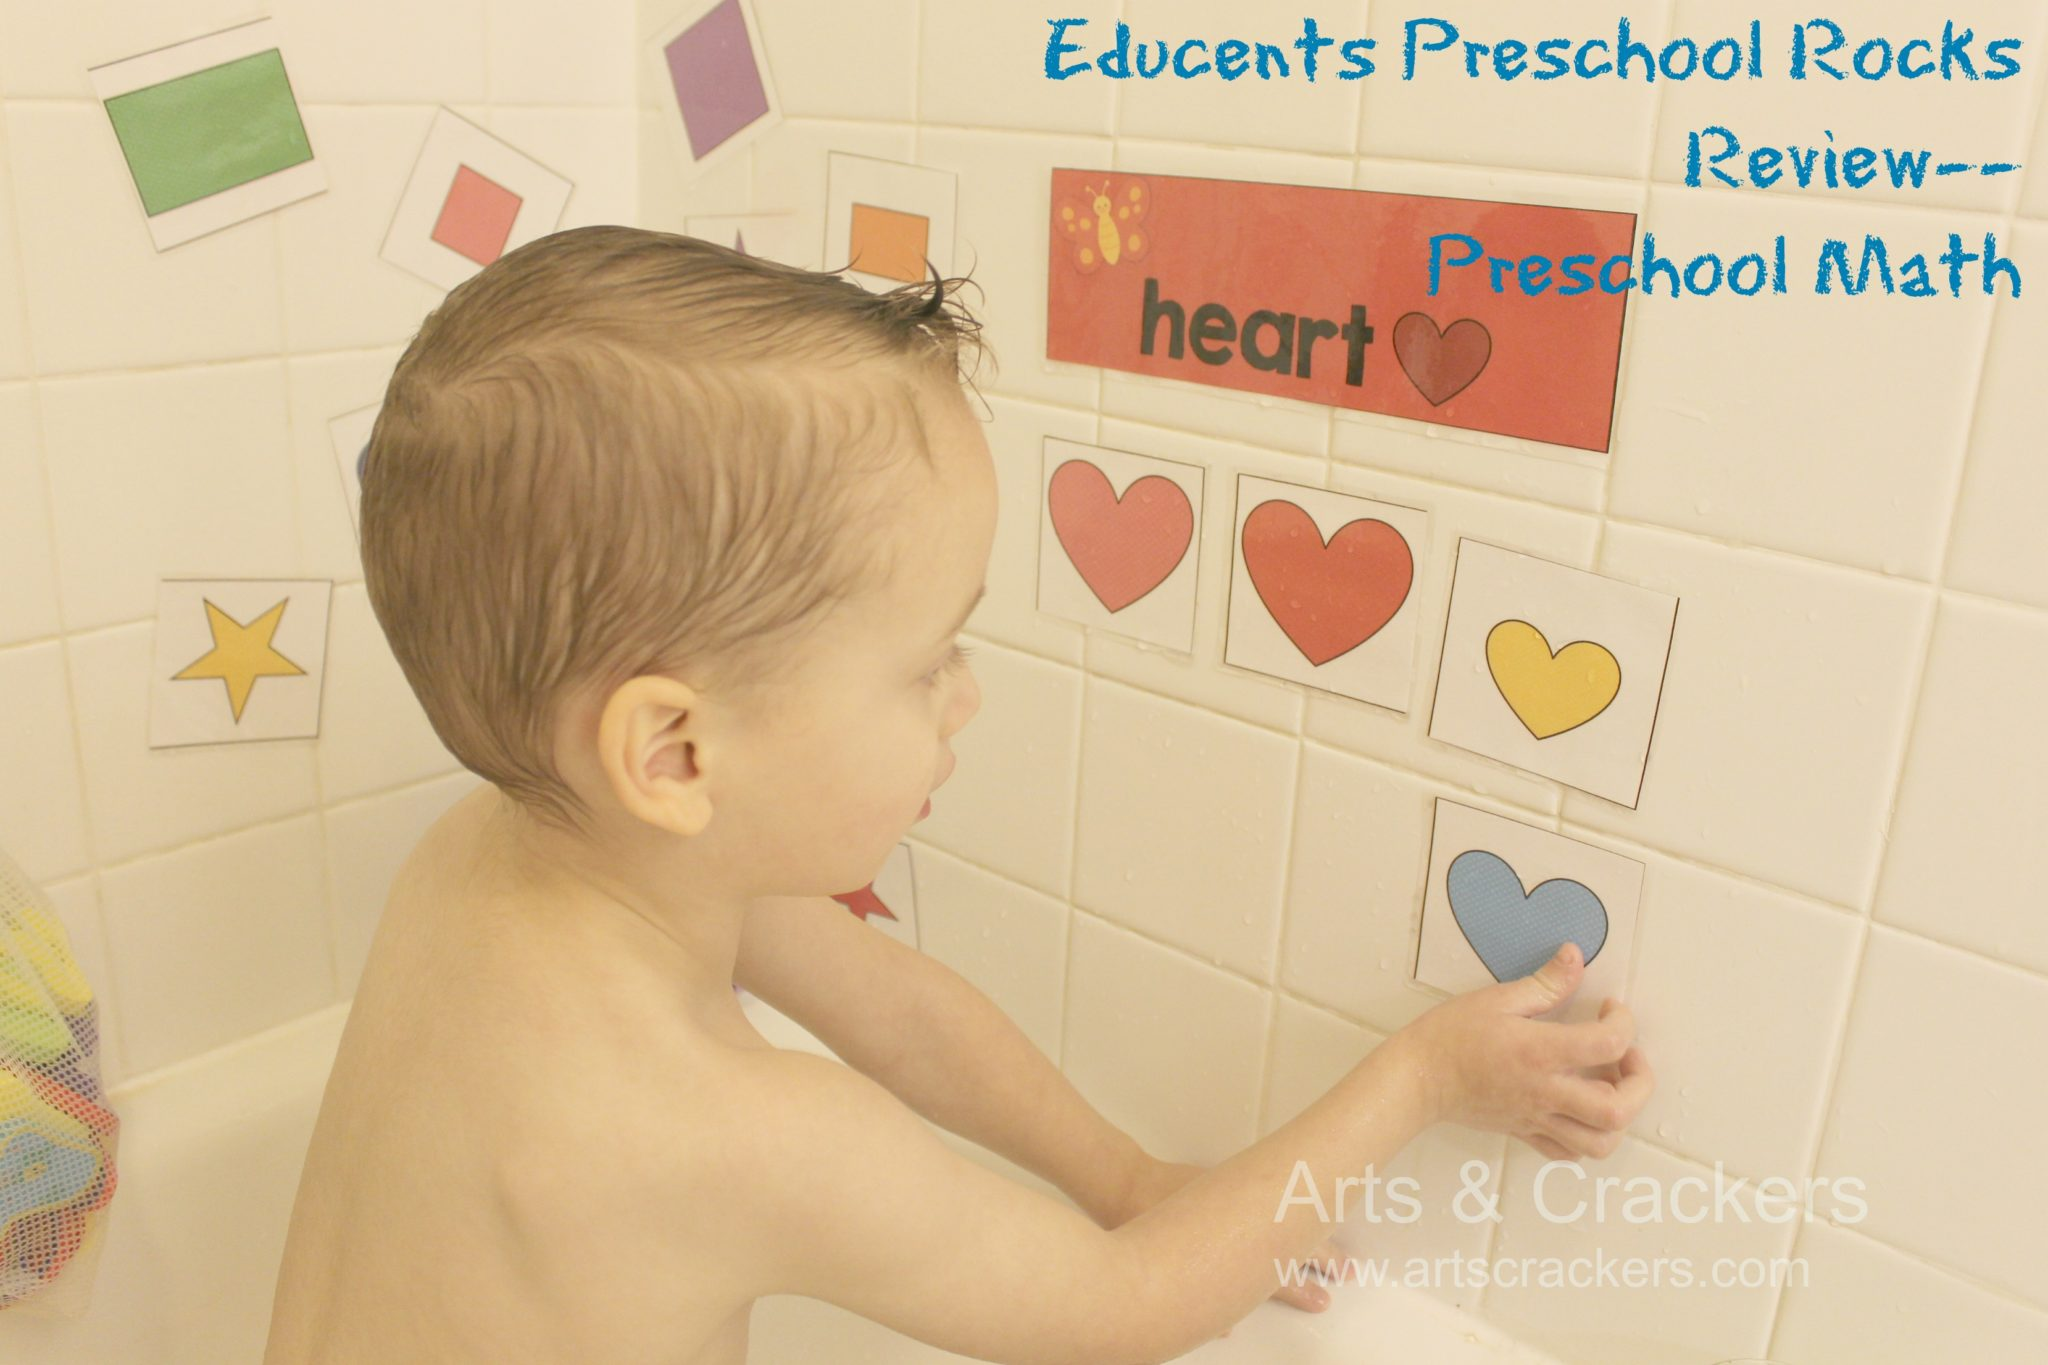 preschool review educents preschool rocks review preschool math 246